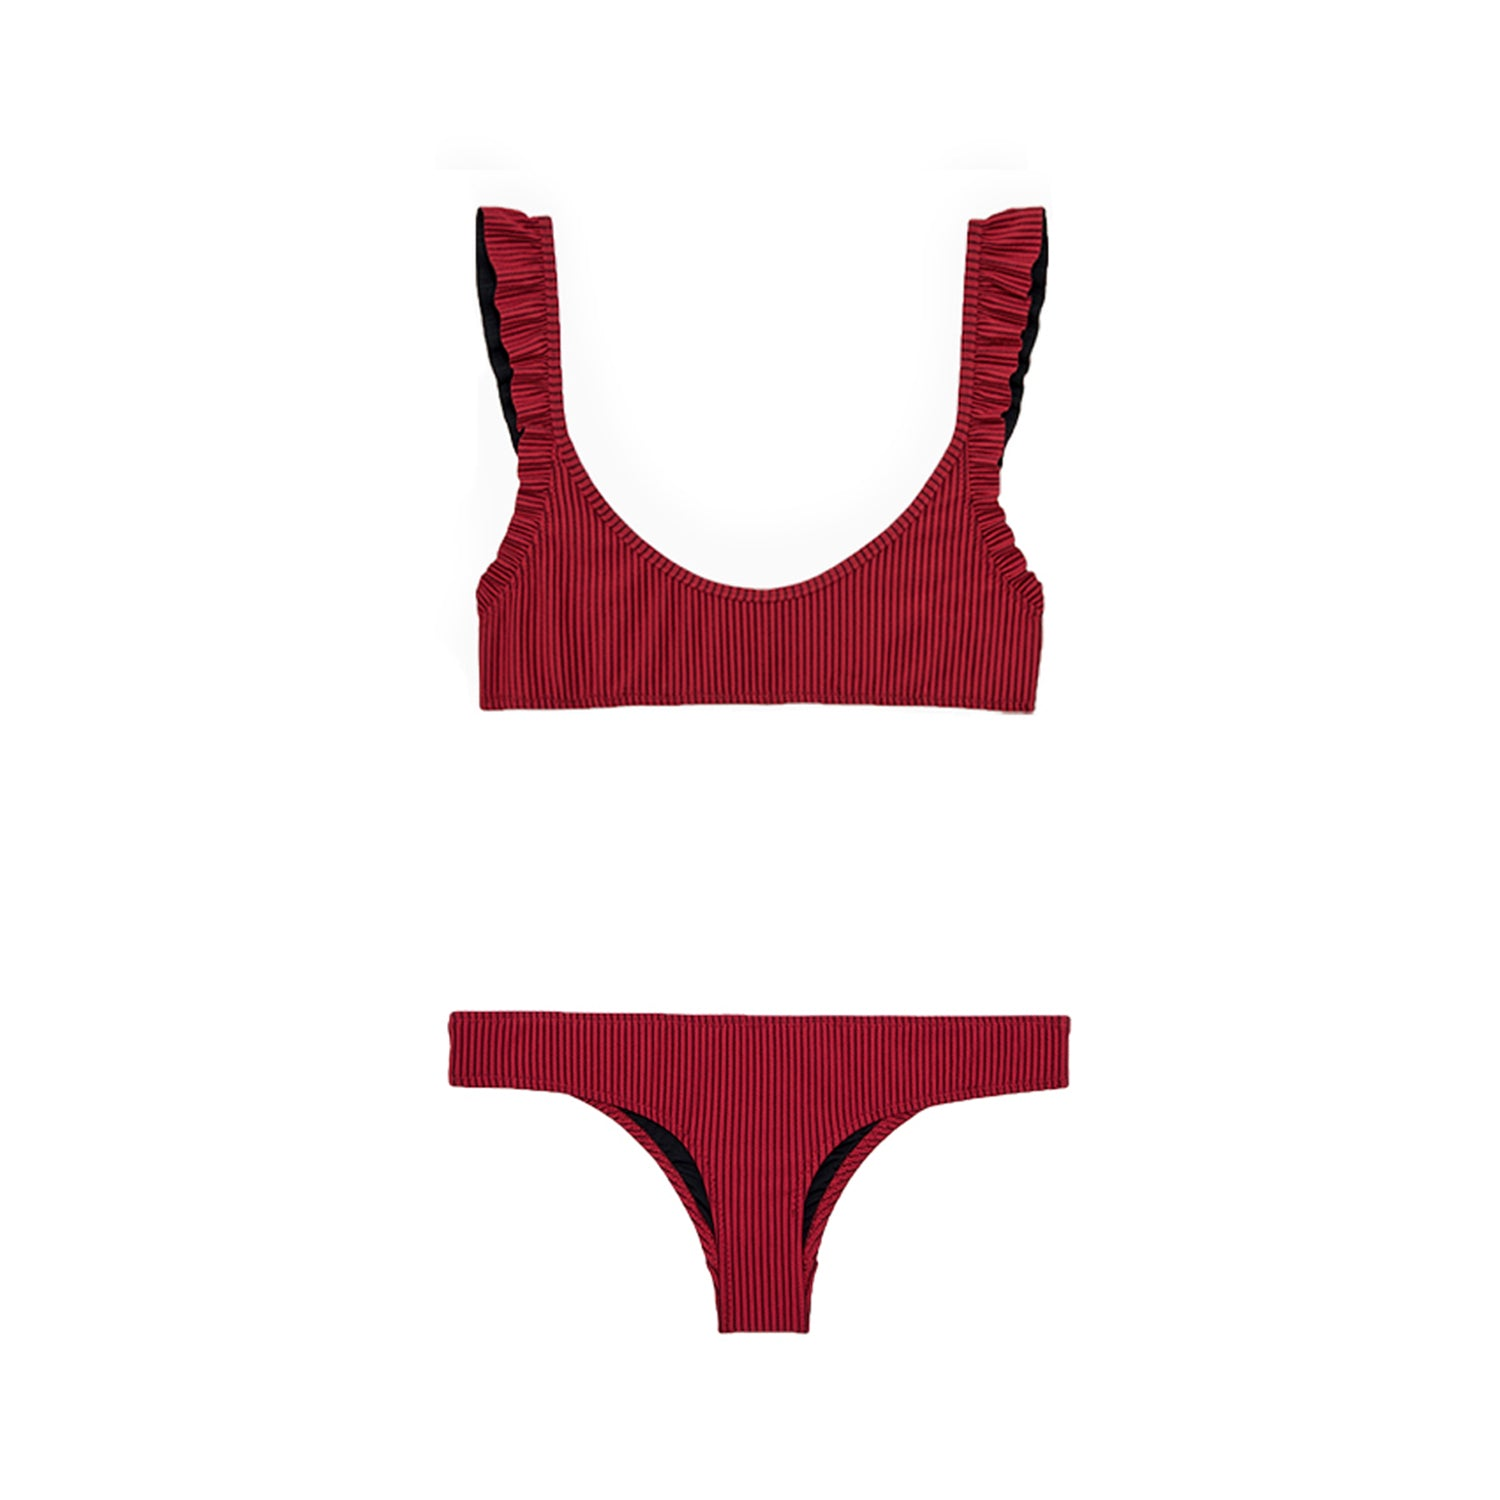 Red two-piece swimsuit by Made by Dawn